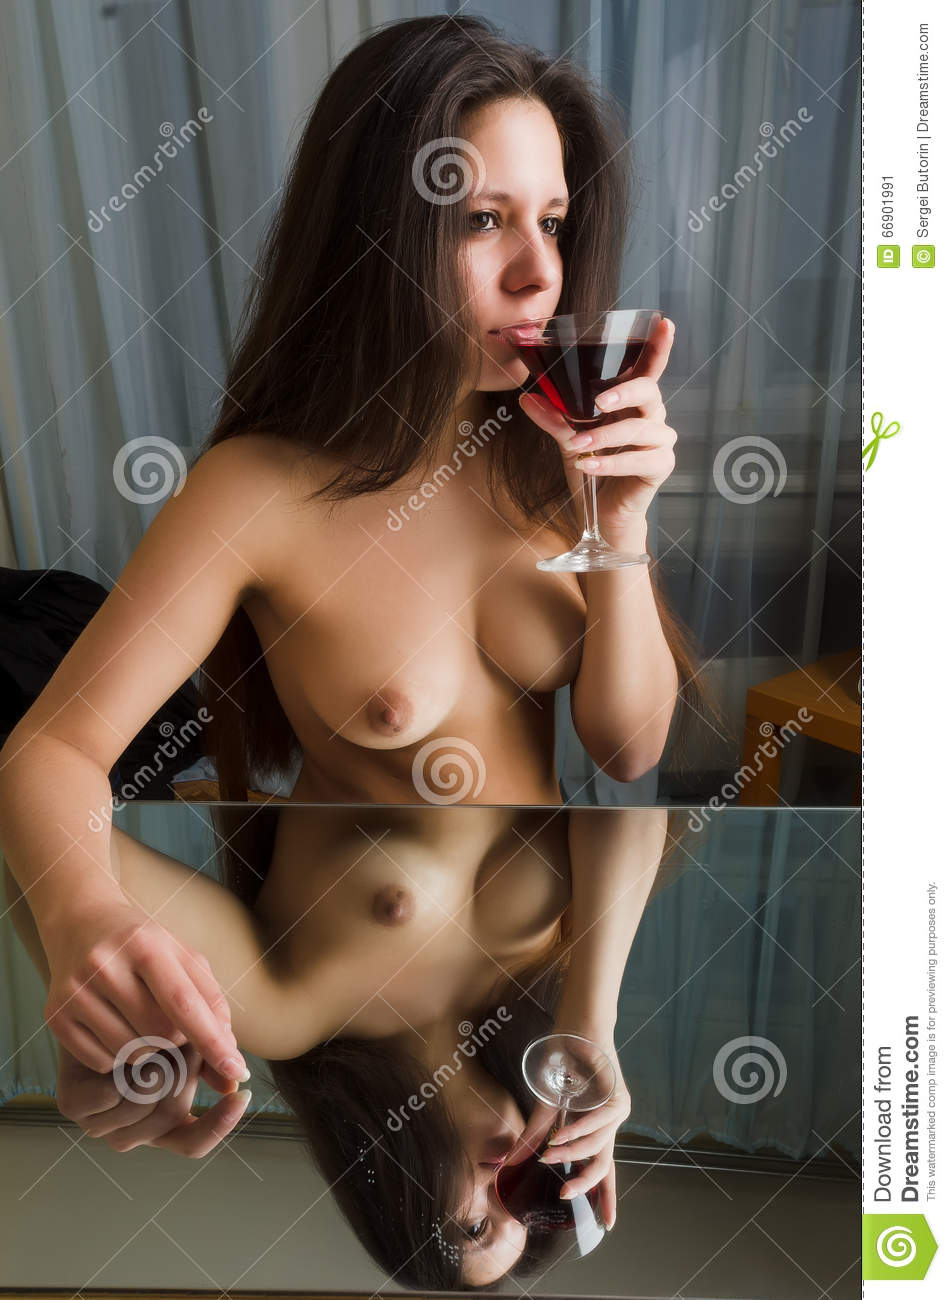 Topless girl abs wine glass have